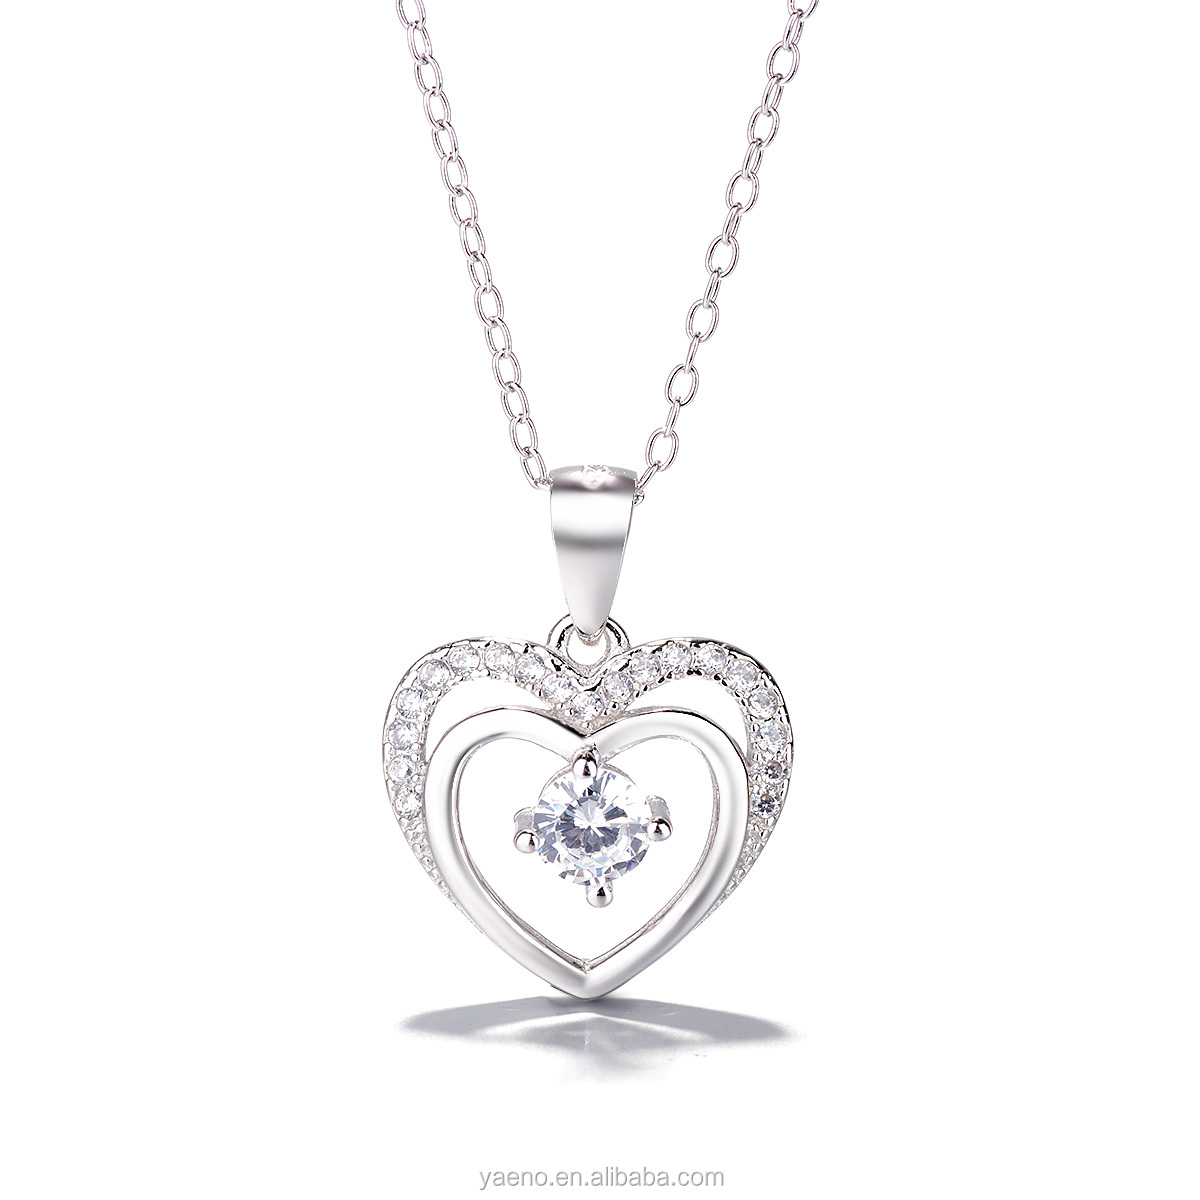 Valentine's Day Factory Wholesale 925 Solid Silver Heart Shape Jewelry Set